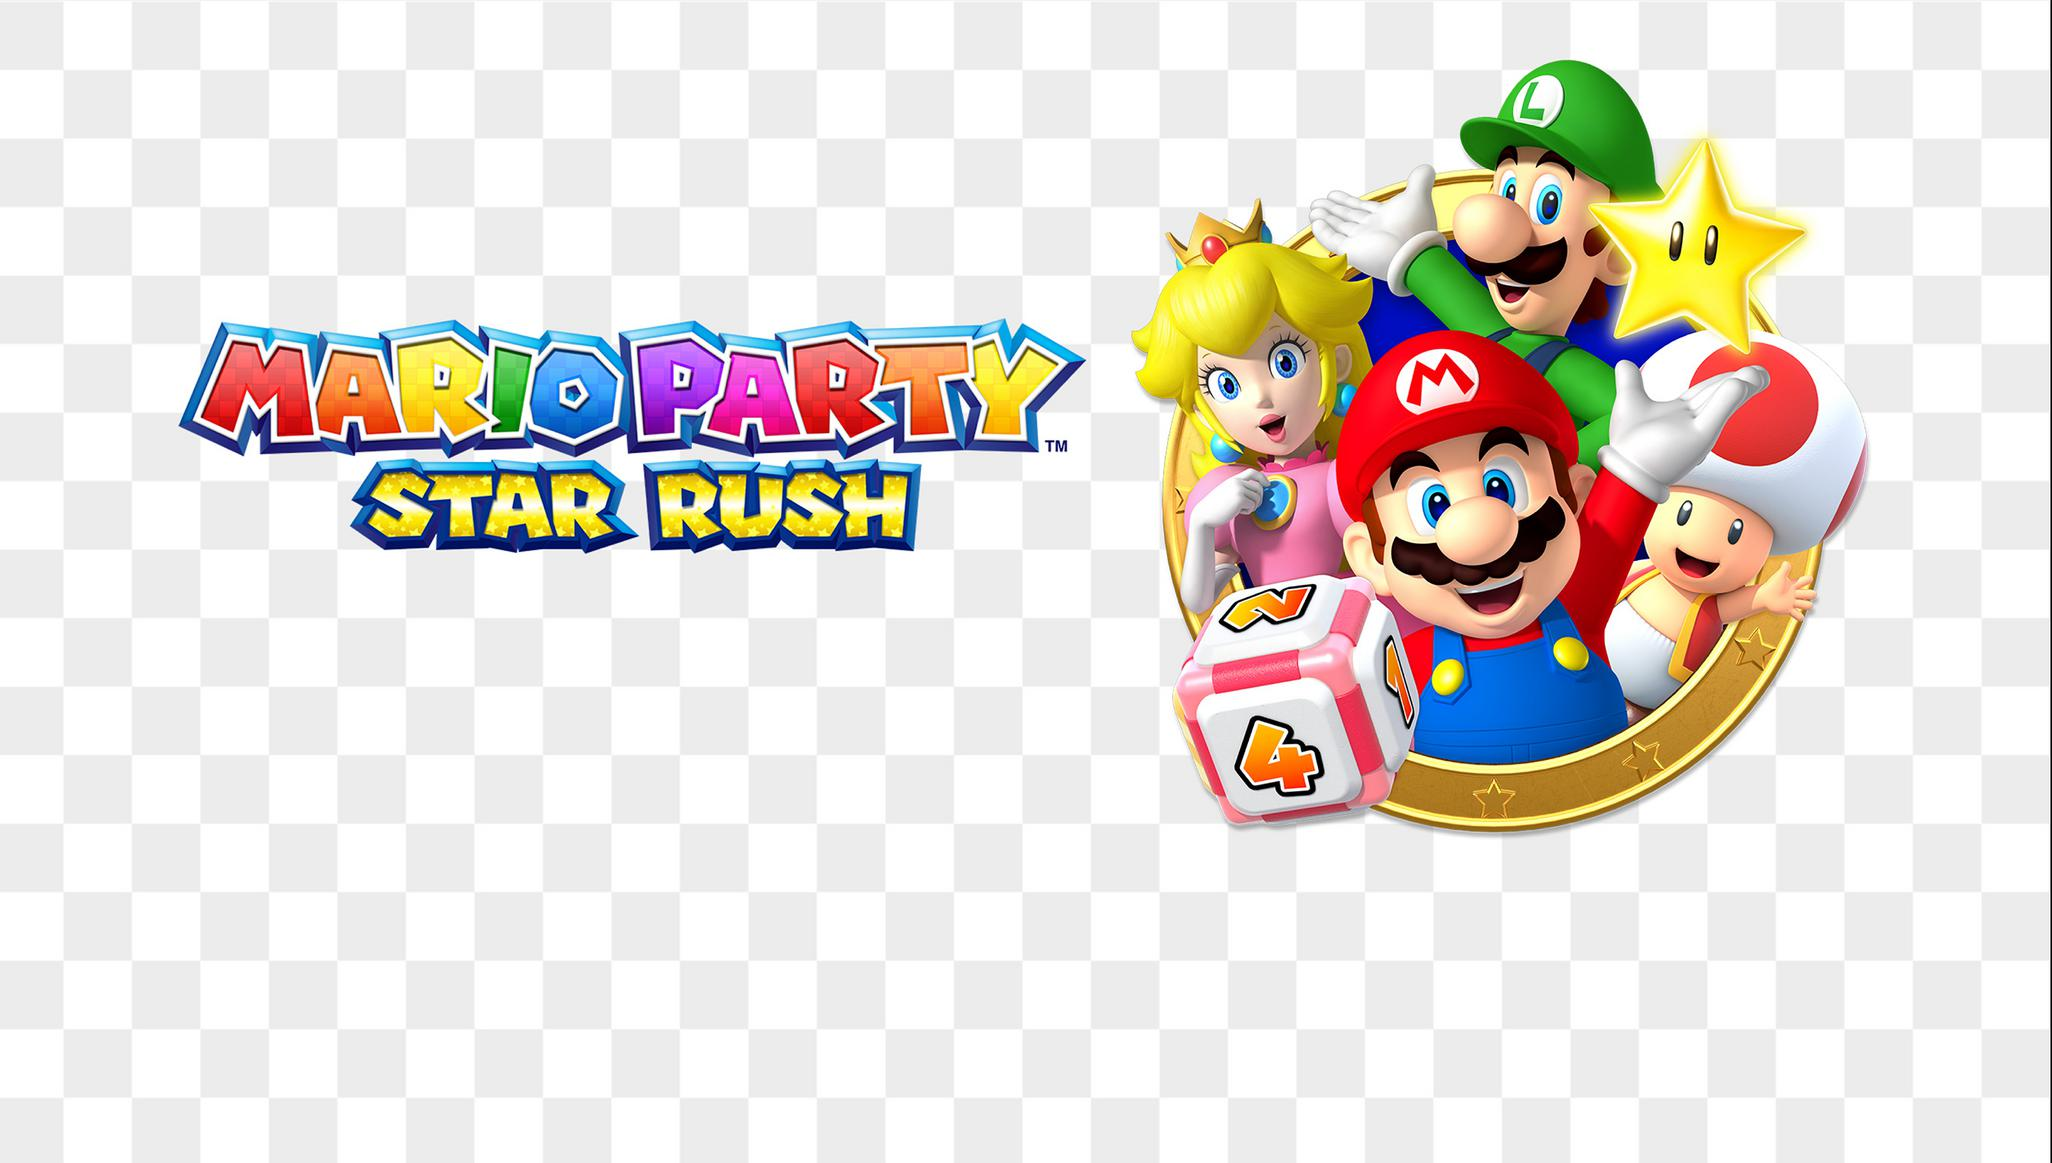 Mario Party's changing again with Mario Party: Star Rush, out this November on 3DS